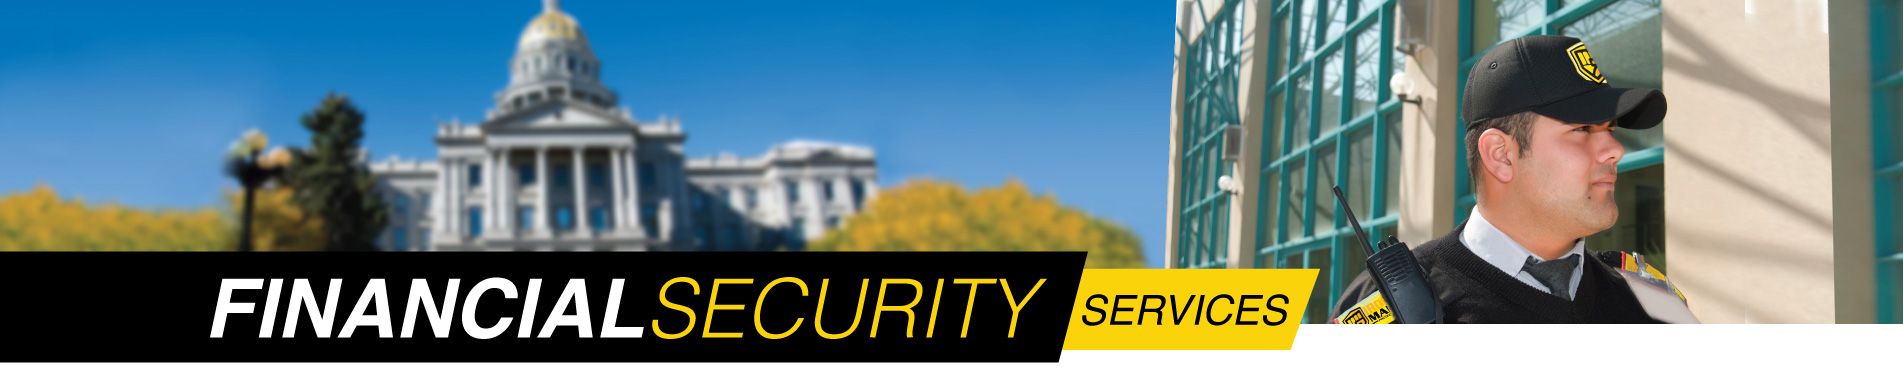 Houston area financial security services